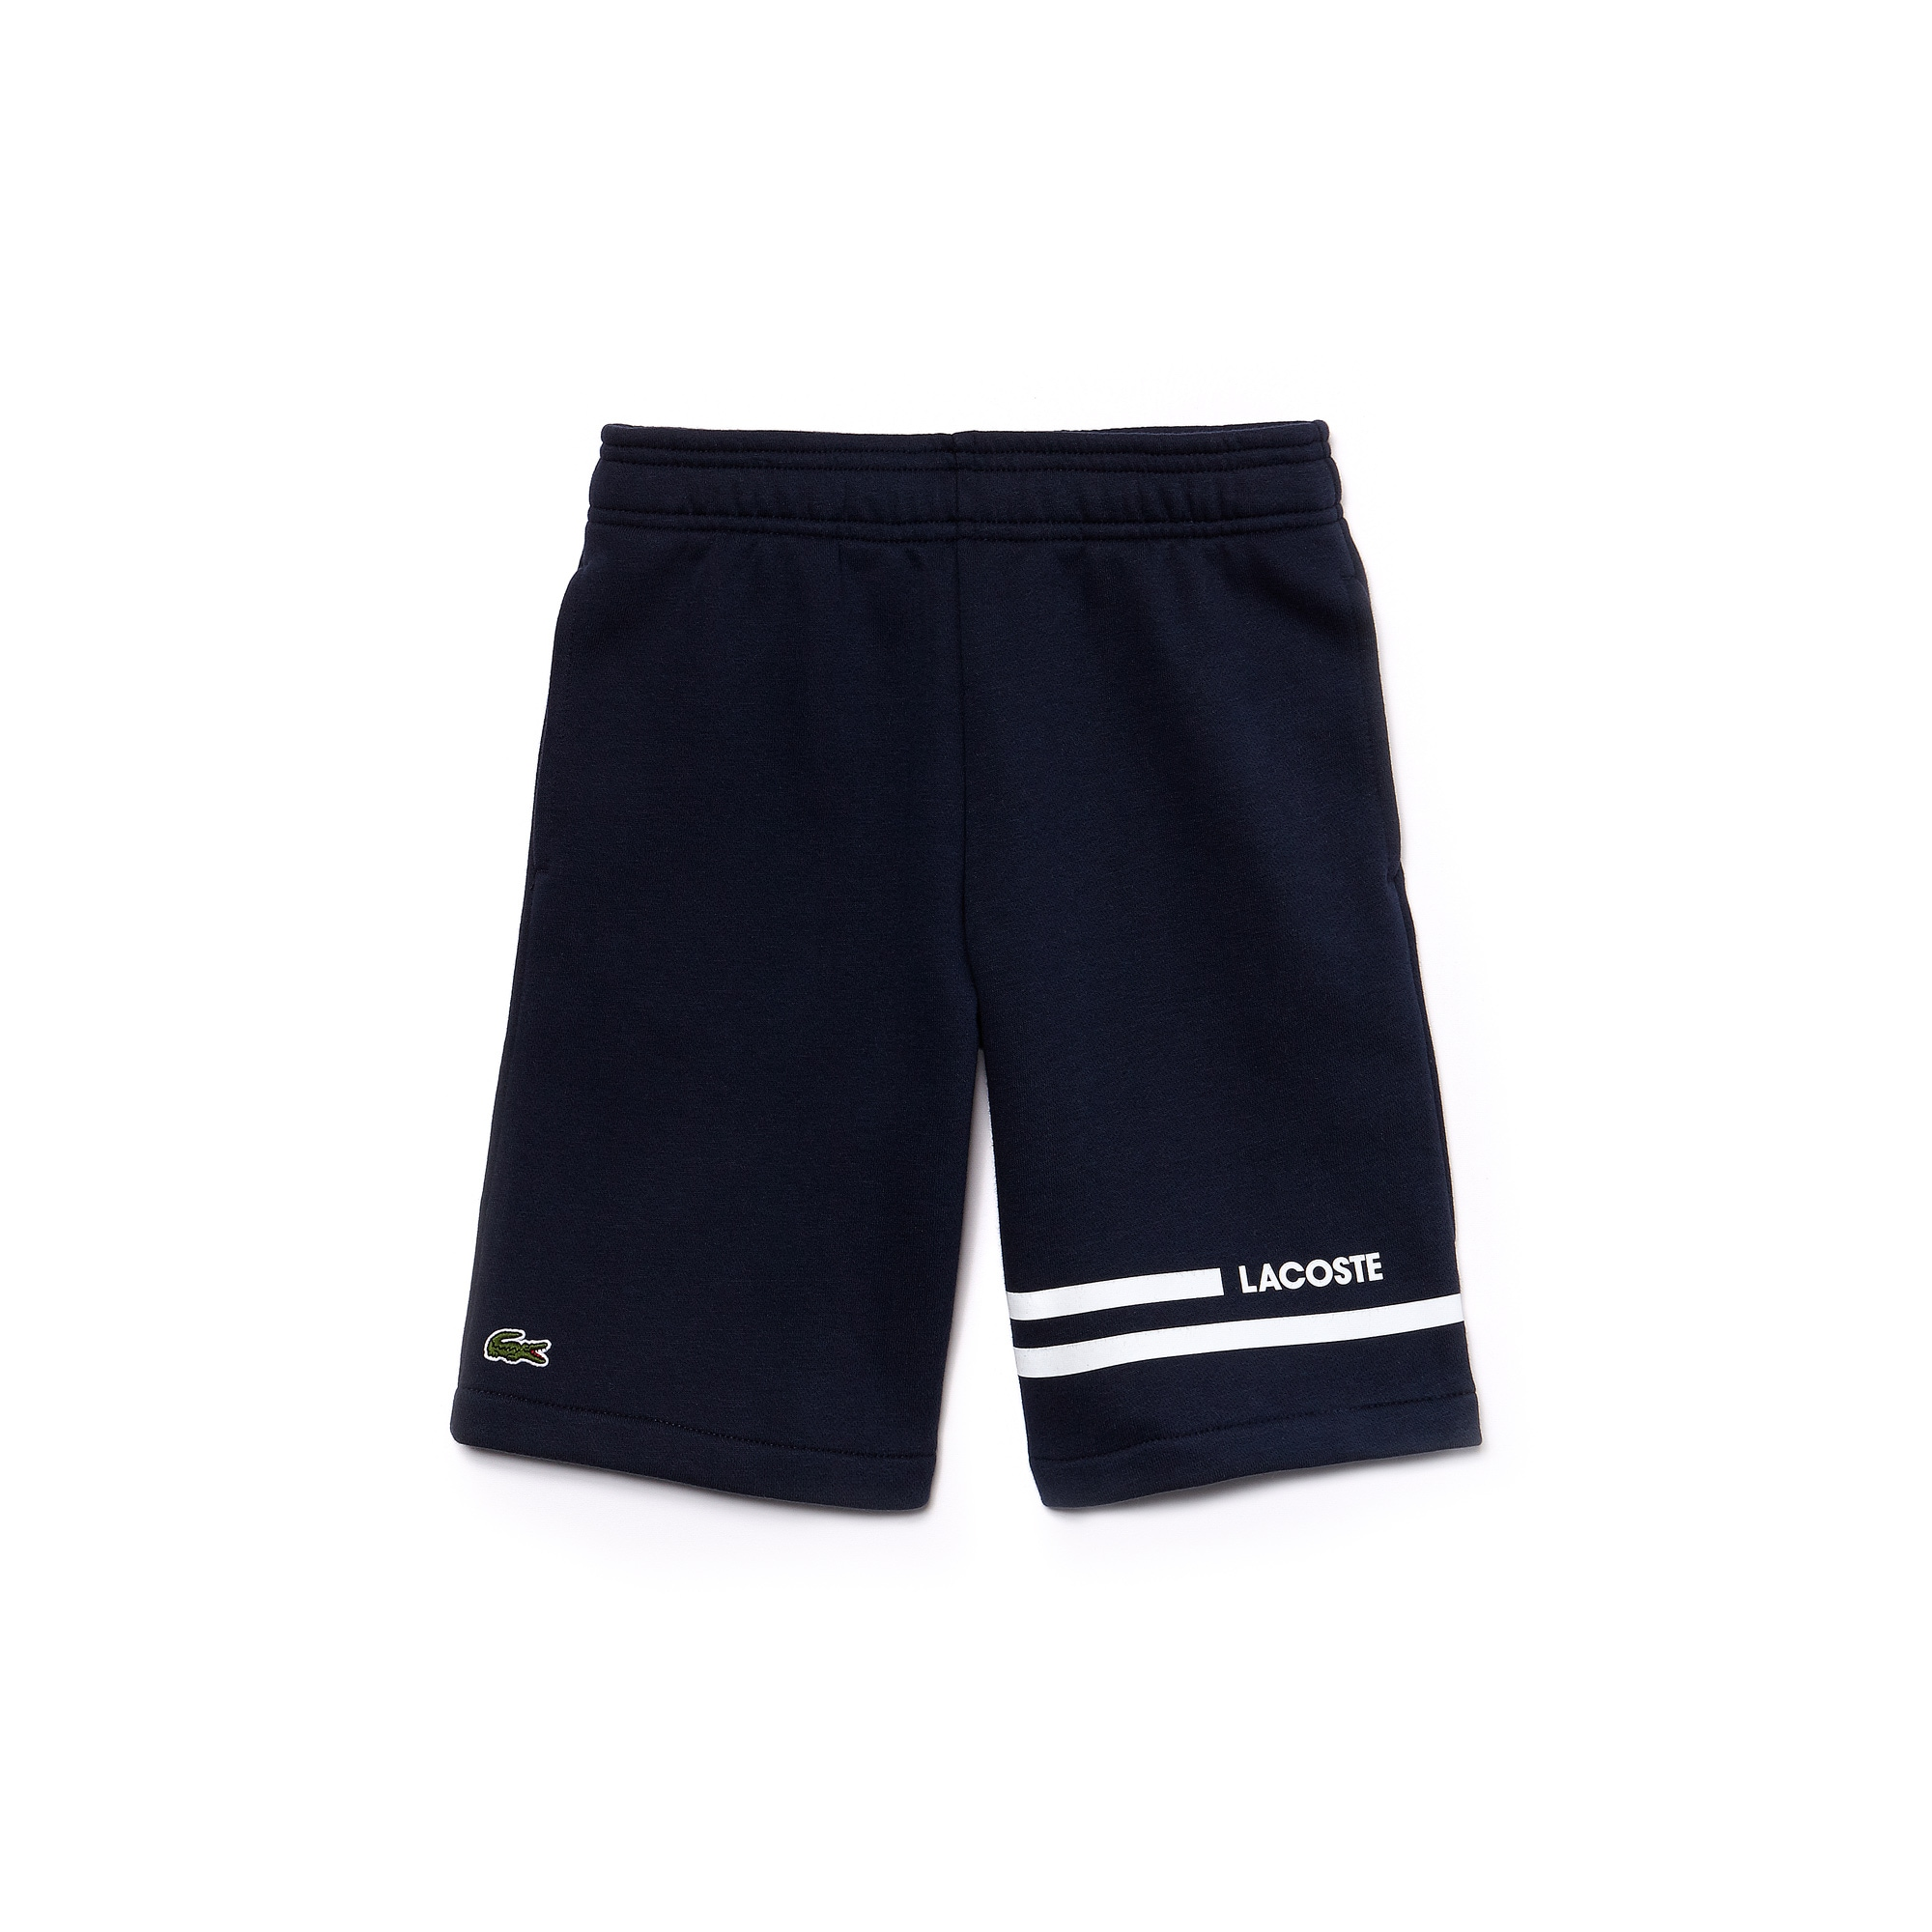 Boys' Lacoste SPORT Contrast Bands Fleece Tennis Shorts